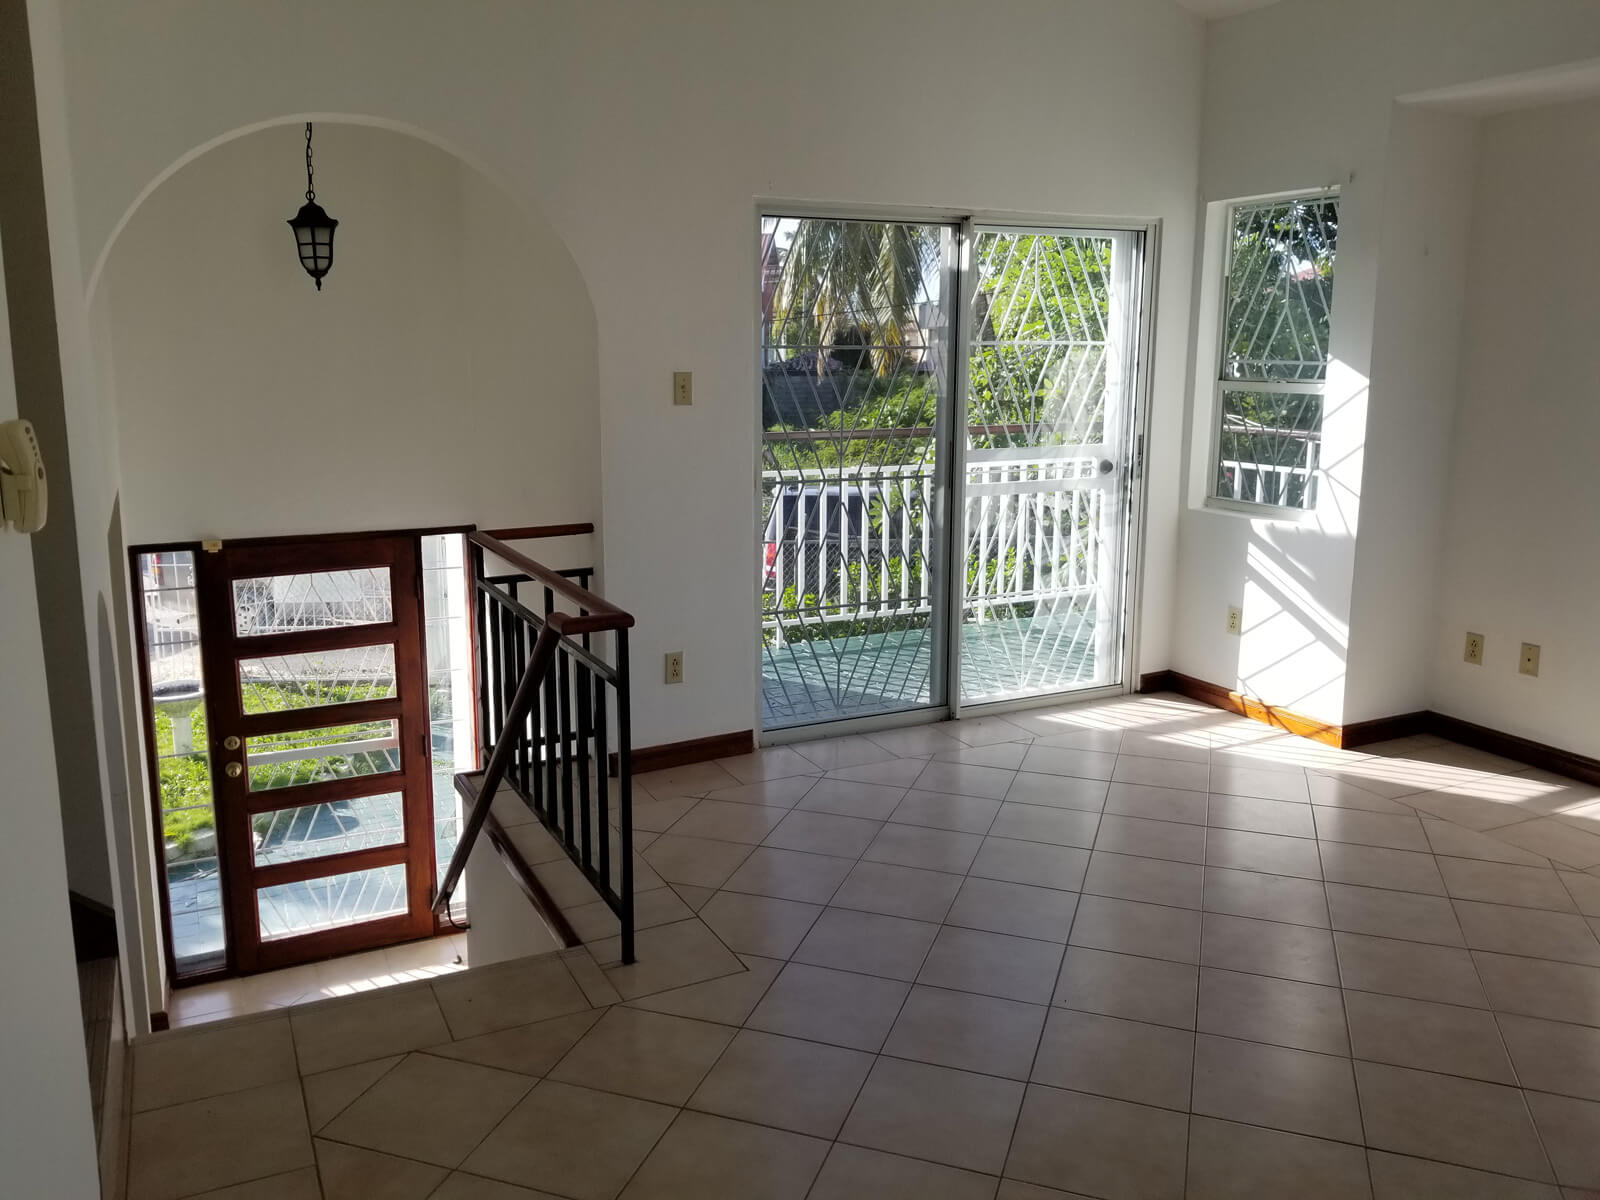 House Rental in Belize City